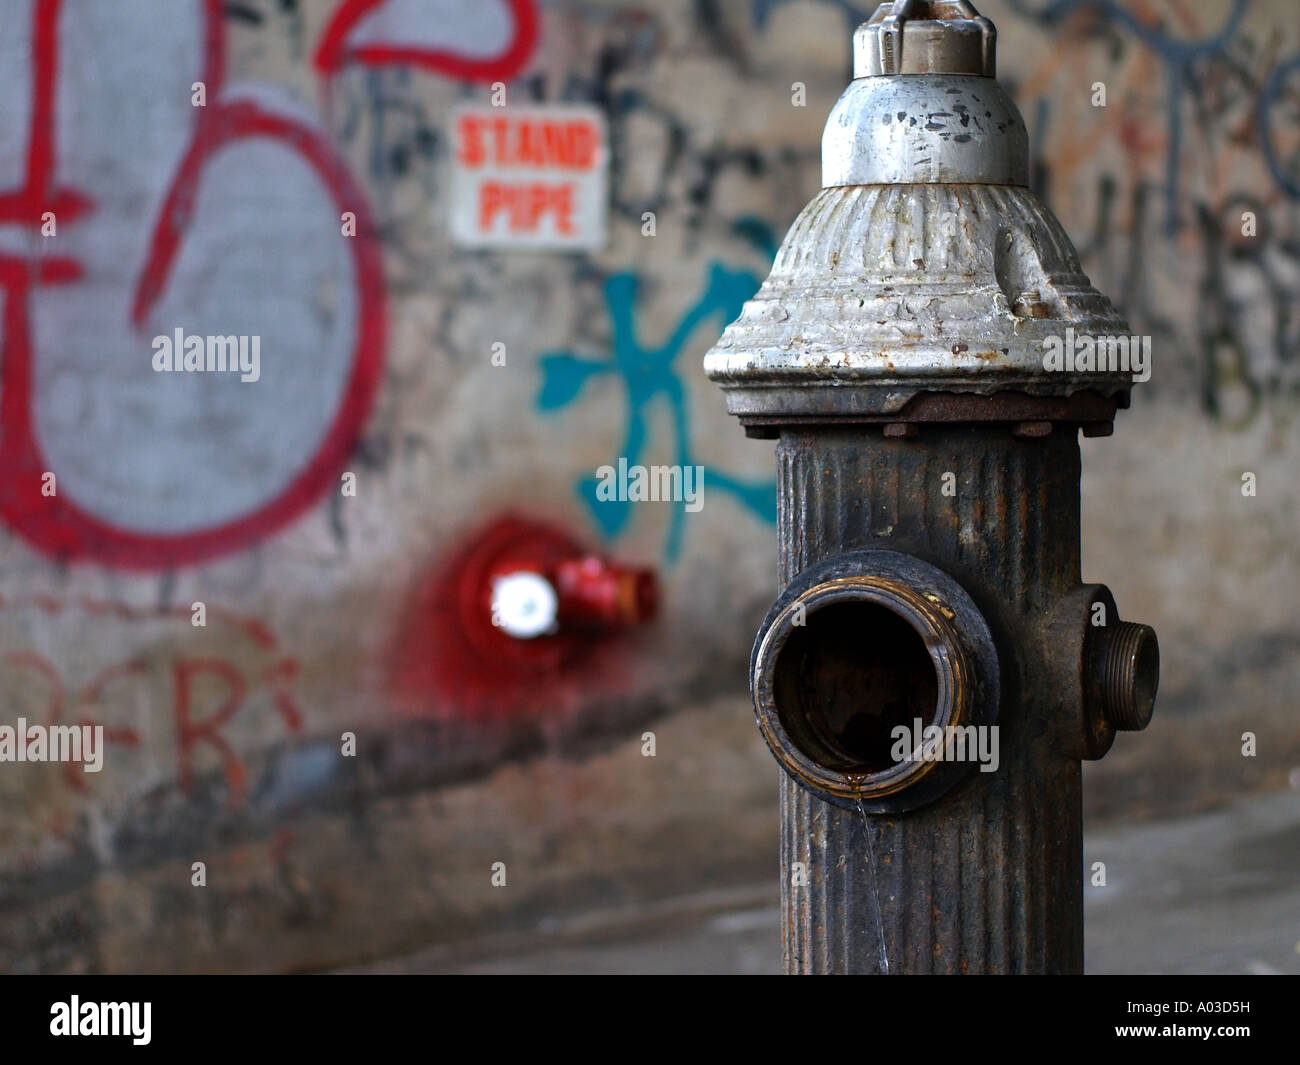 Dirty Fire Hydrant Stock Photos Amp Dirty Fire Hydrant Stock